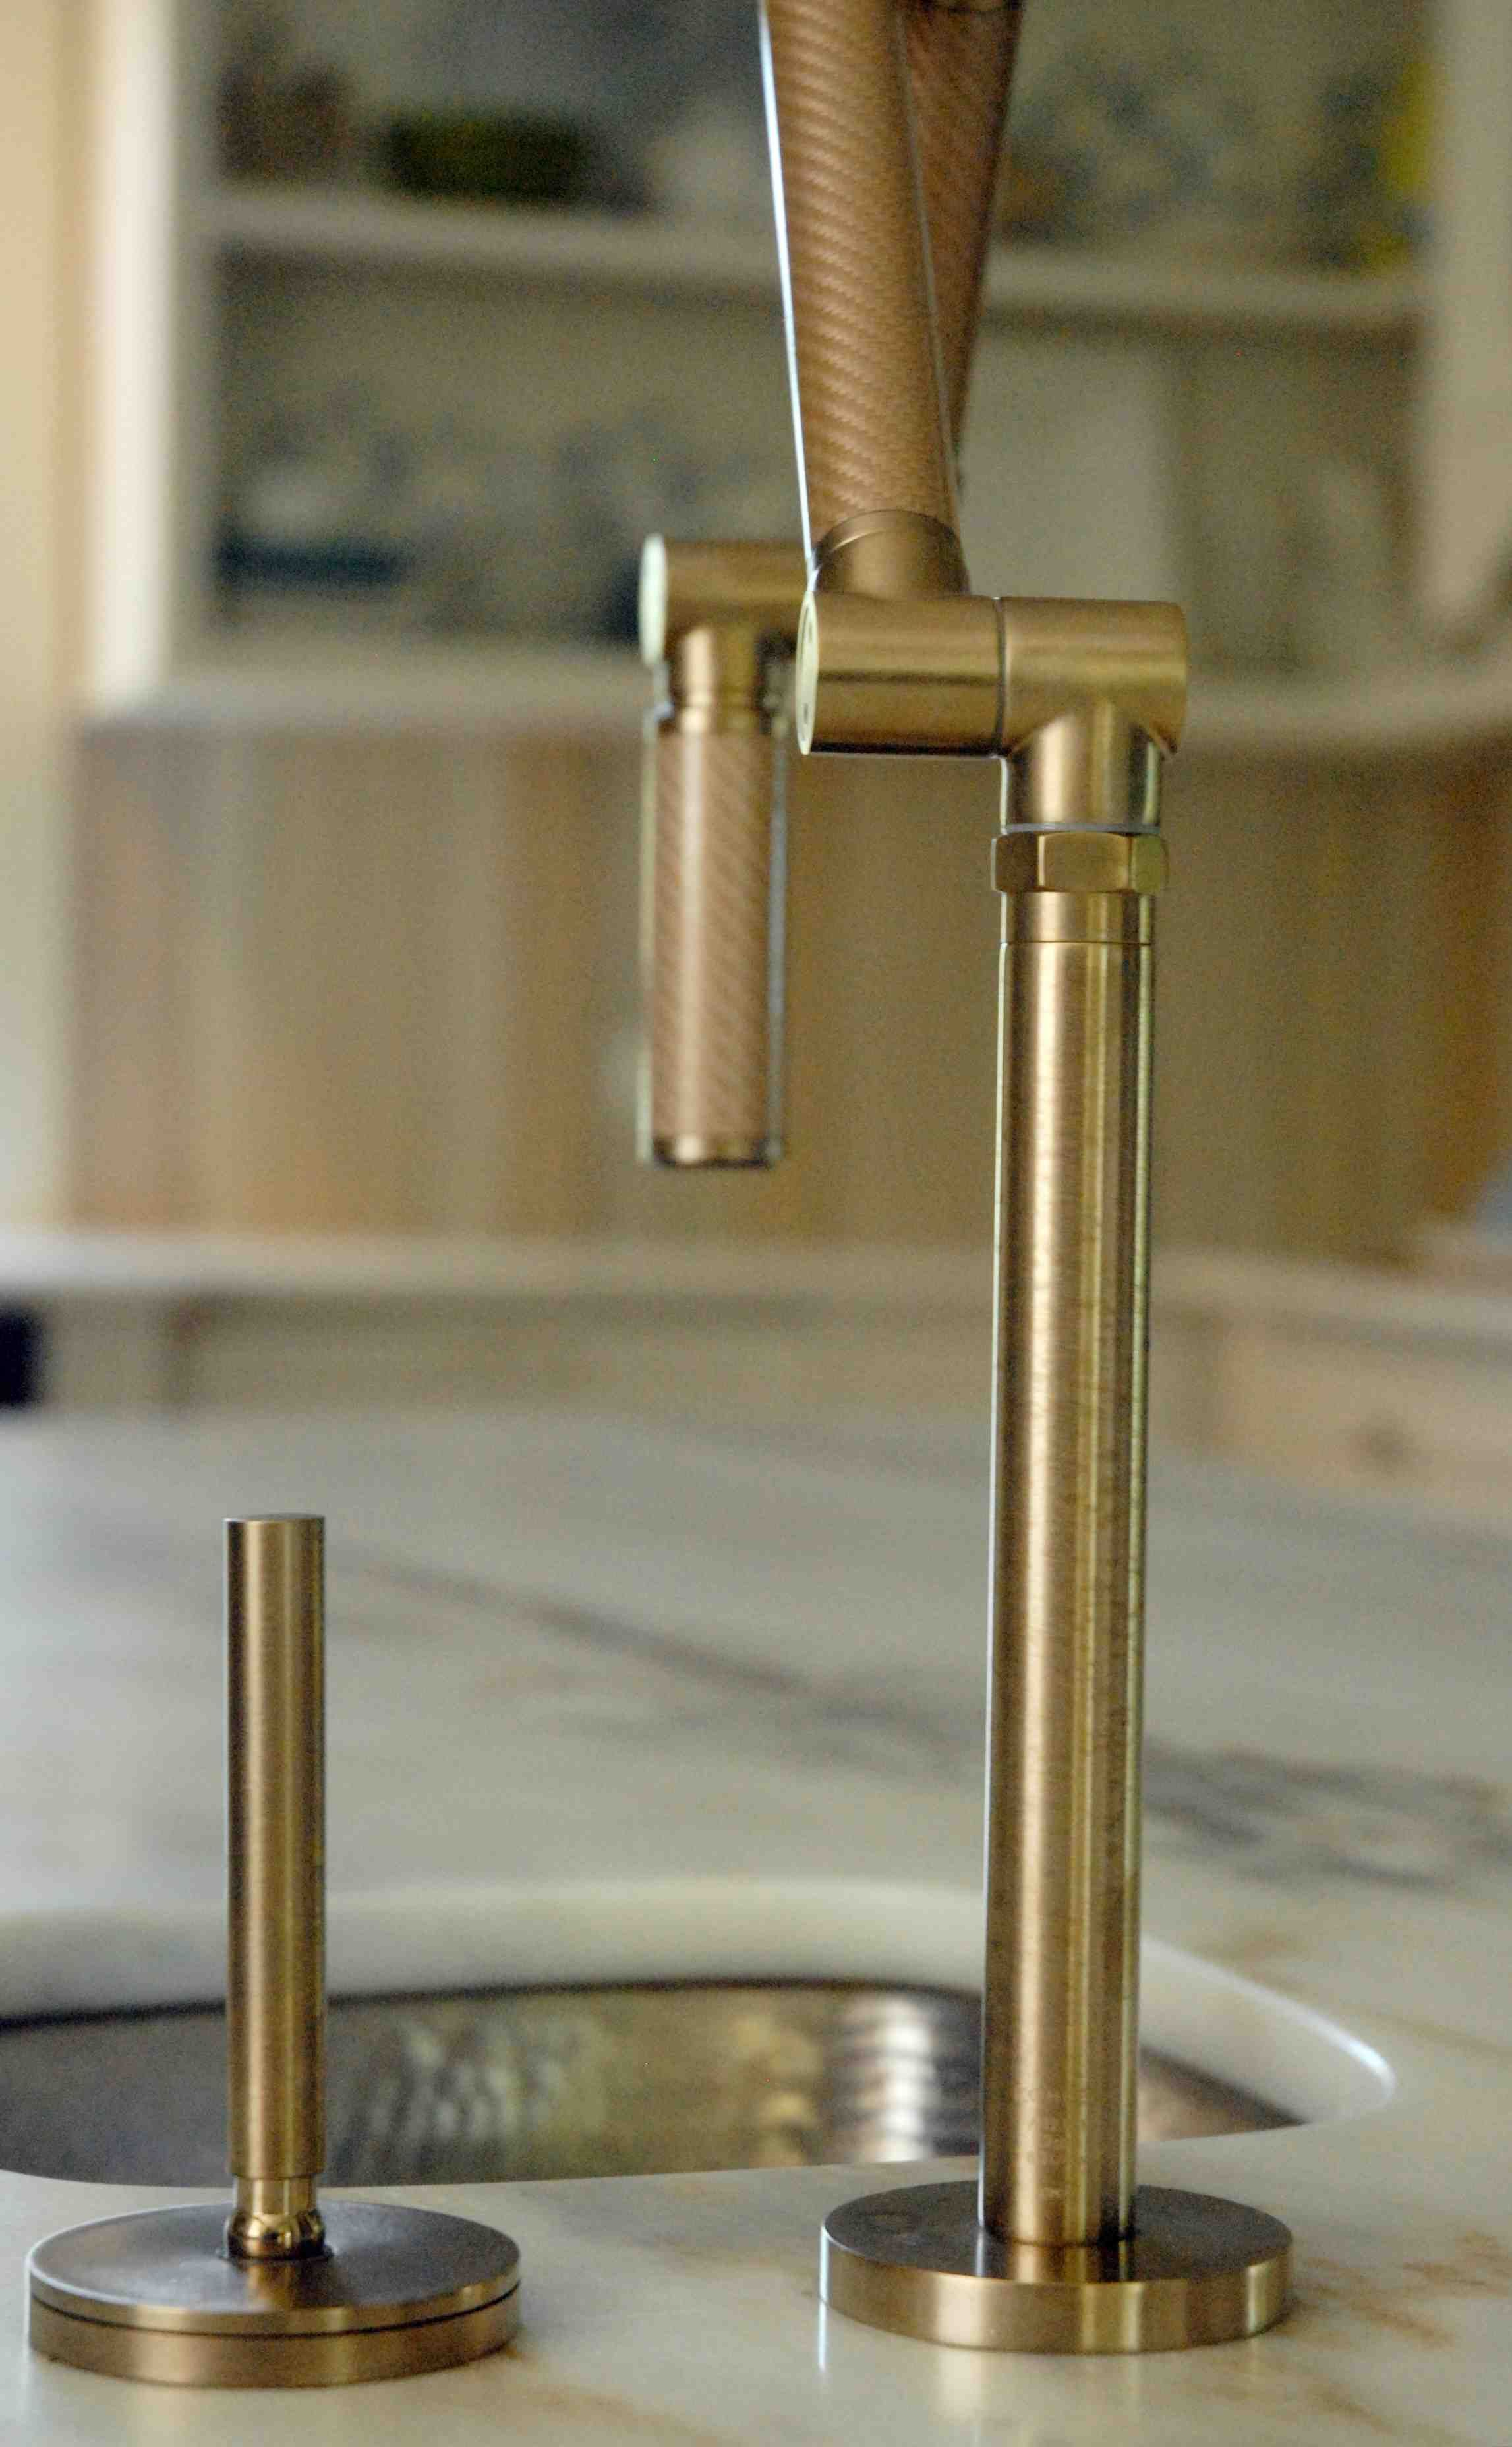 ideas kitchen match a how luxury with in to lovely mix of metals sink design faucet and articulating farmhouse